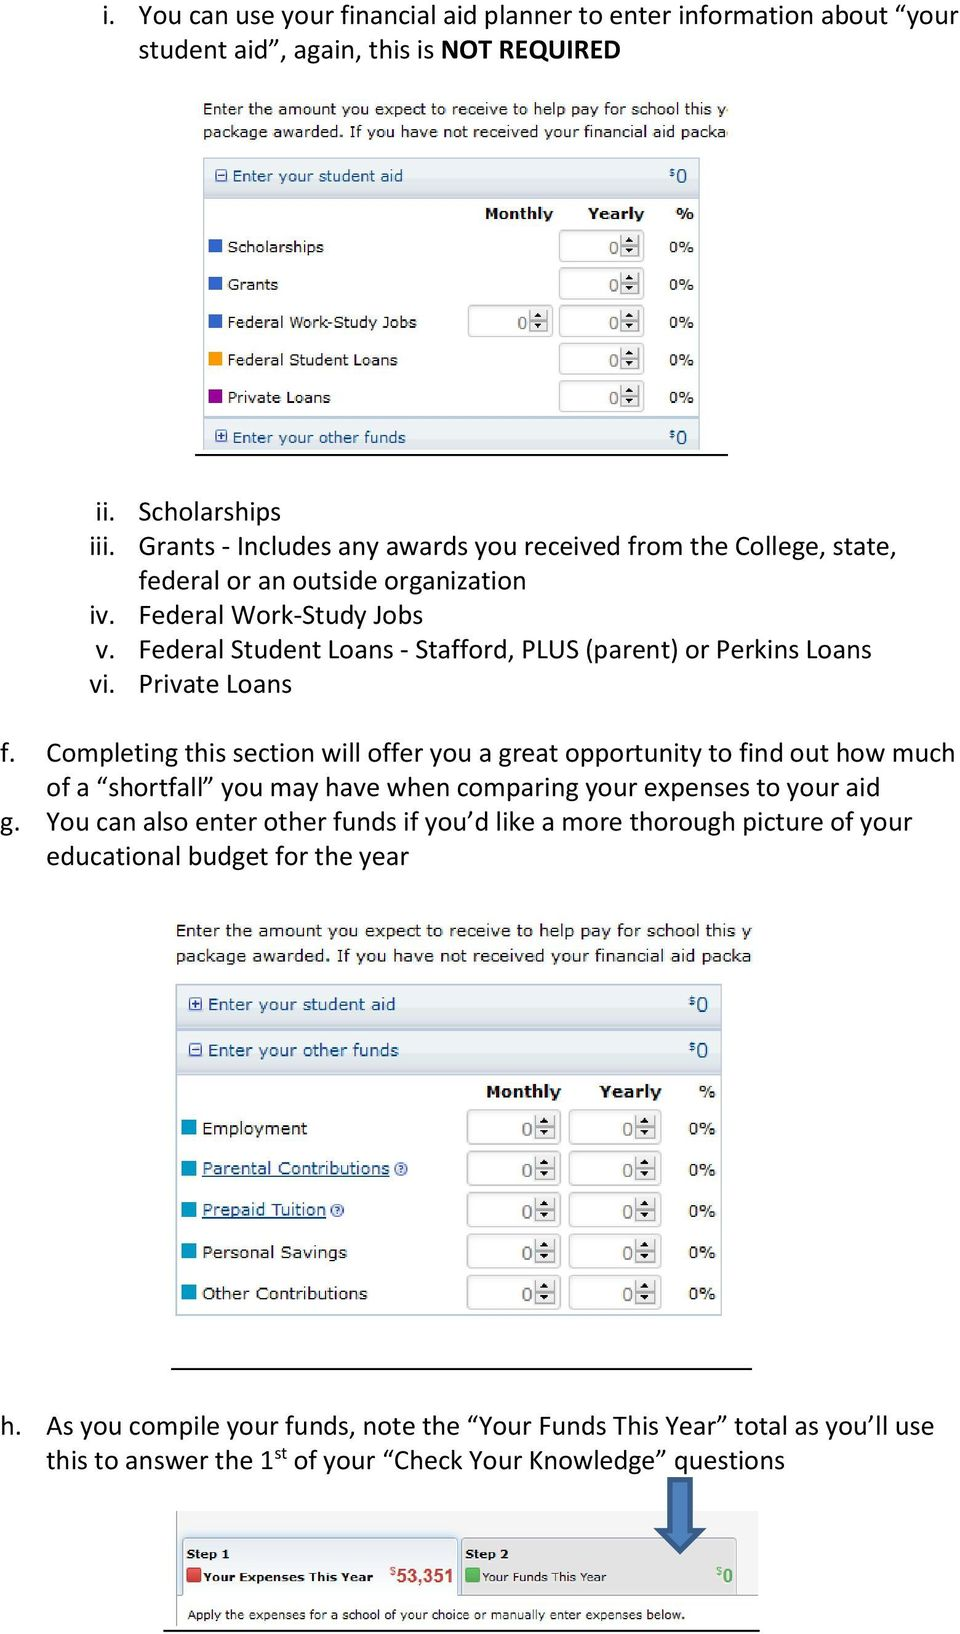 Federal Student Loans - Stafford, PLUS (parent) or Perkins Loans vi. Private Loans f.